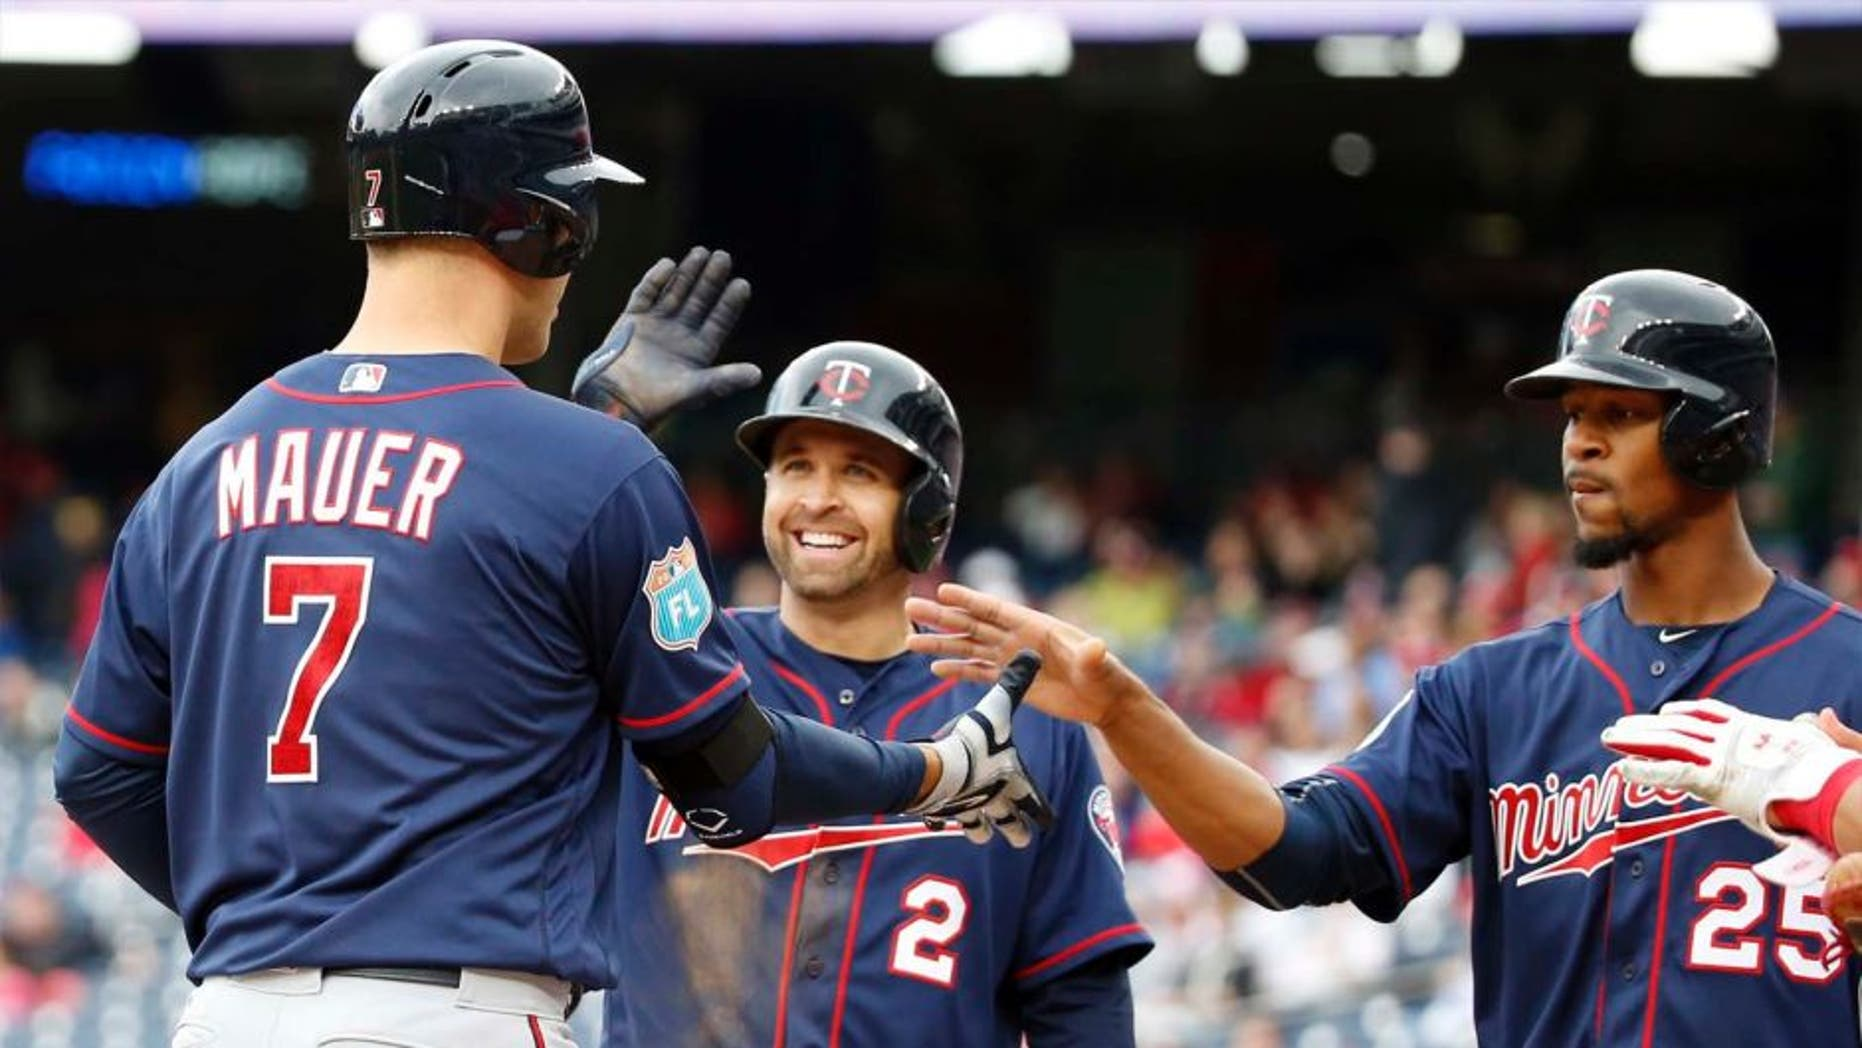 Saturday, April 2: The Minnesota Twins' Joe Mauer (left) celebrates knocking in Brian Dozier (center) and Byron Buxton with a three-run home run during the third inning of an exhibition baseball game against the Washington Nationals at Nationals Park in Washington.